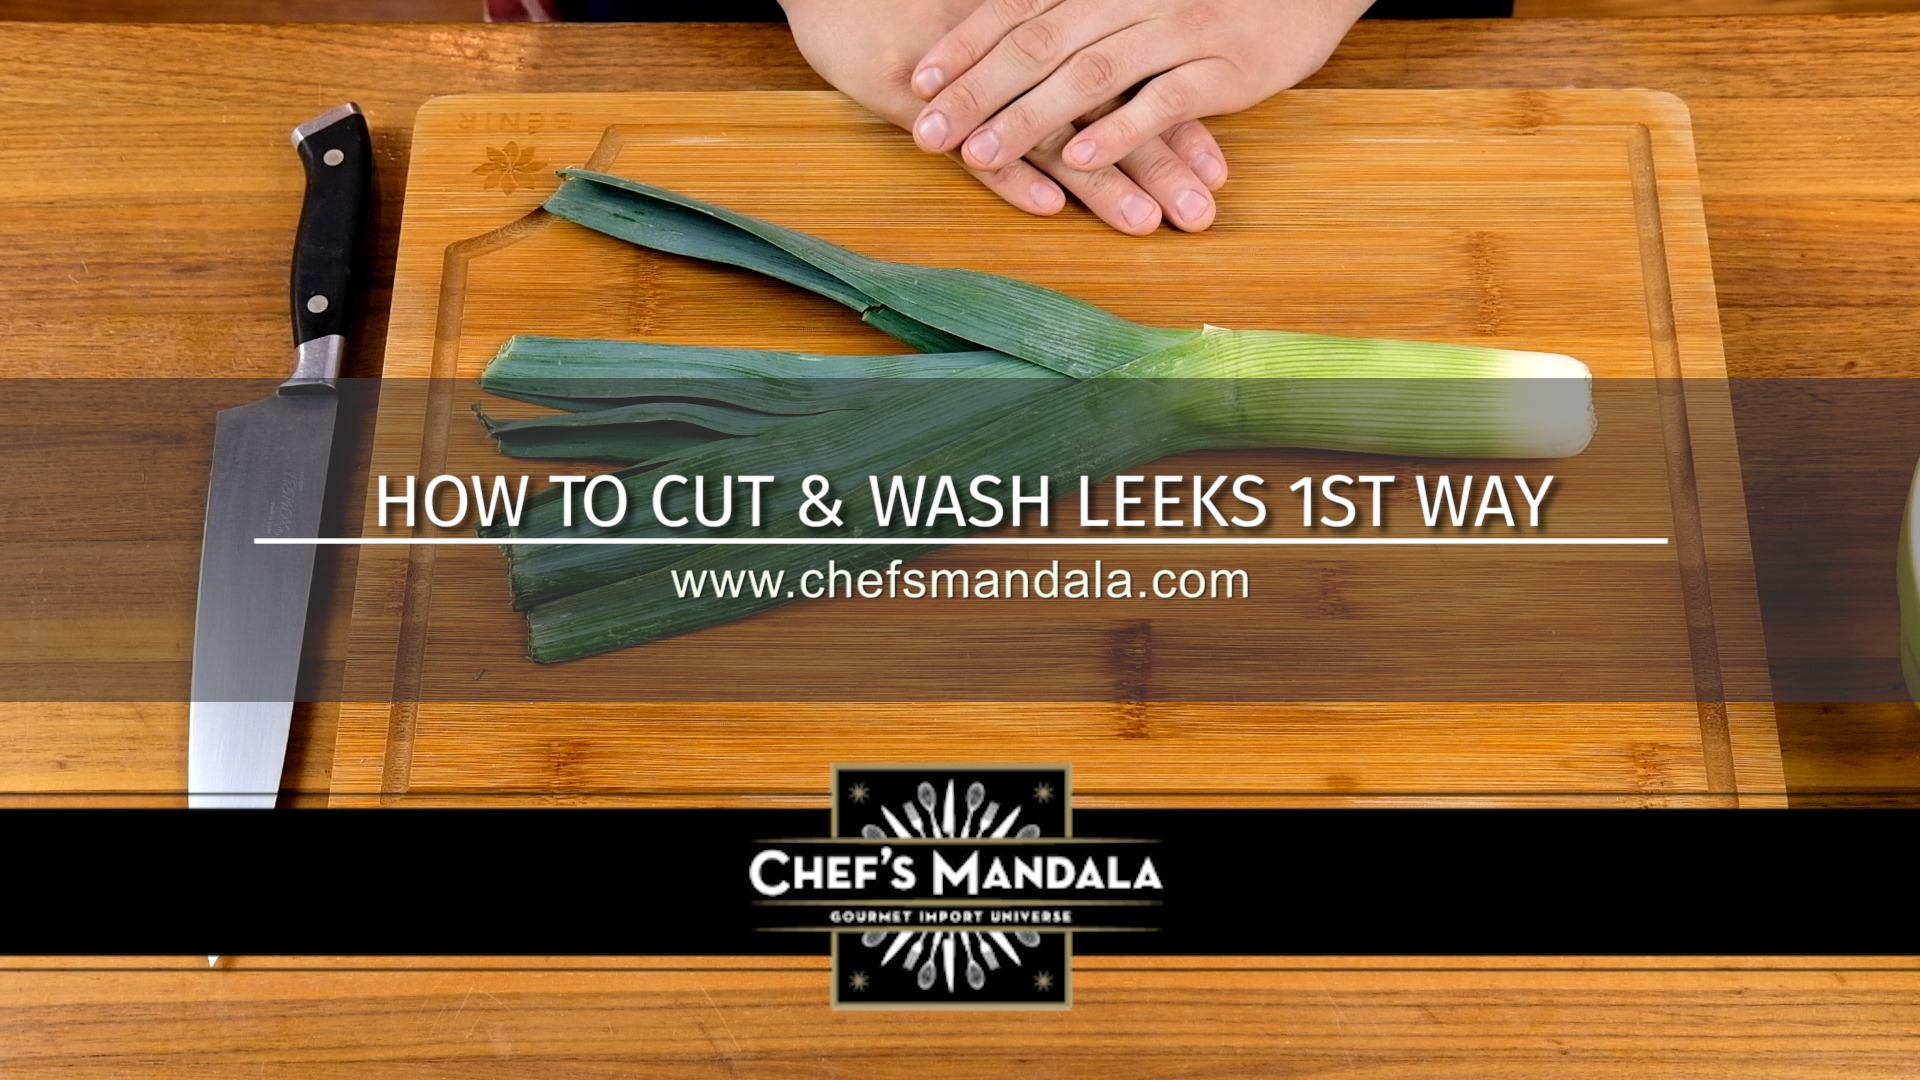 HOW TO CUT & WASH LEEKS 1ST WAY